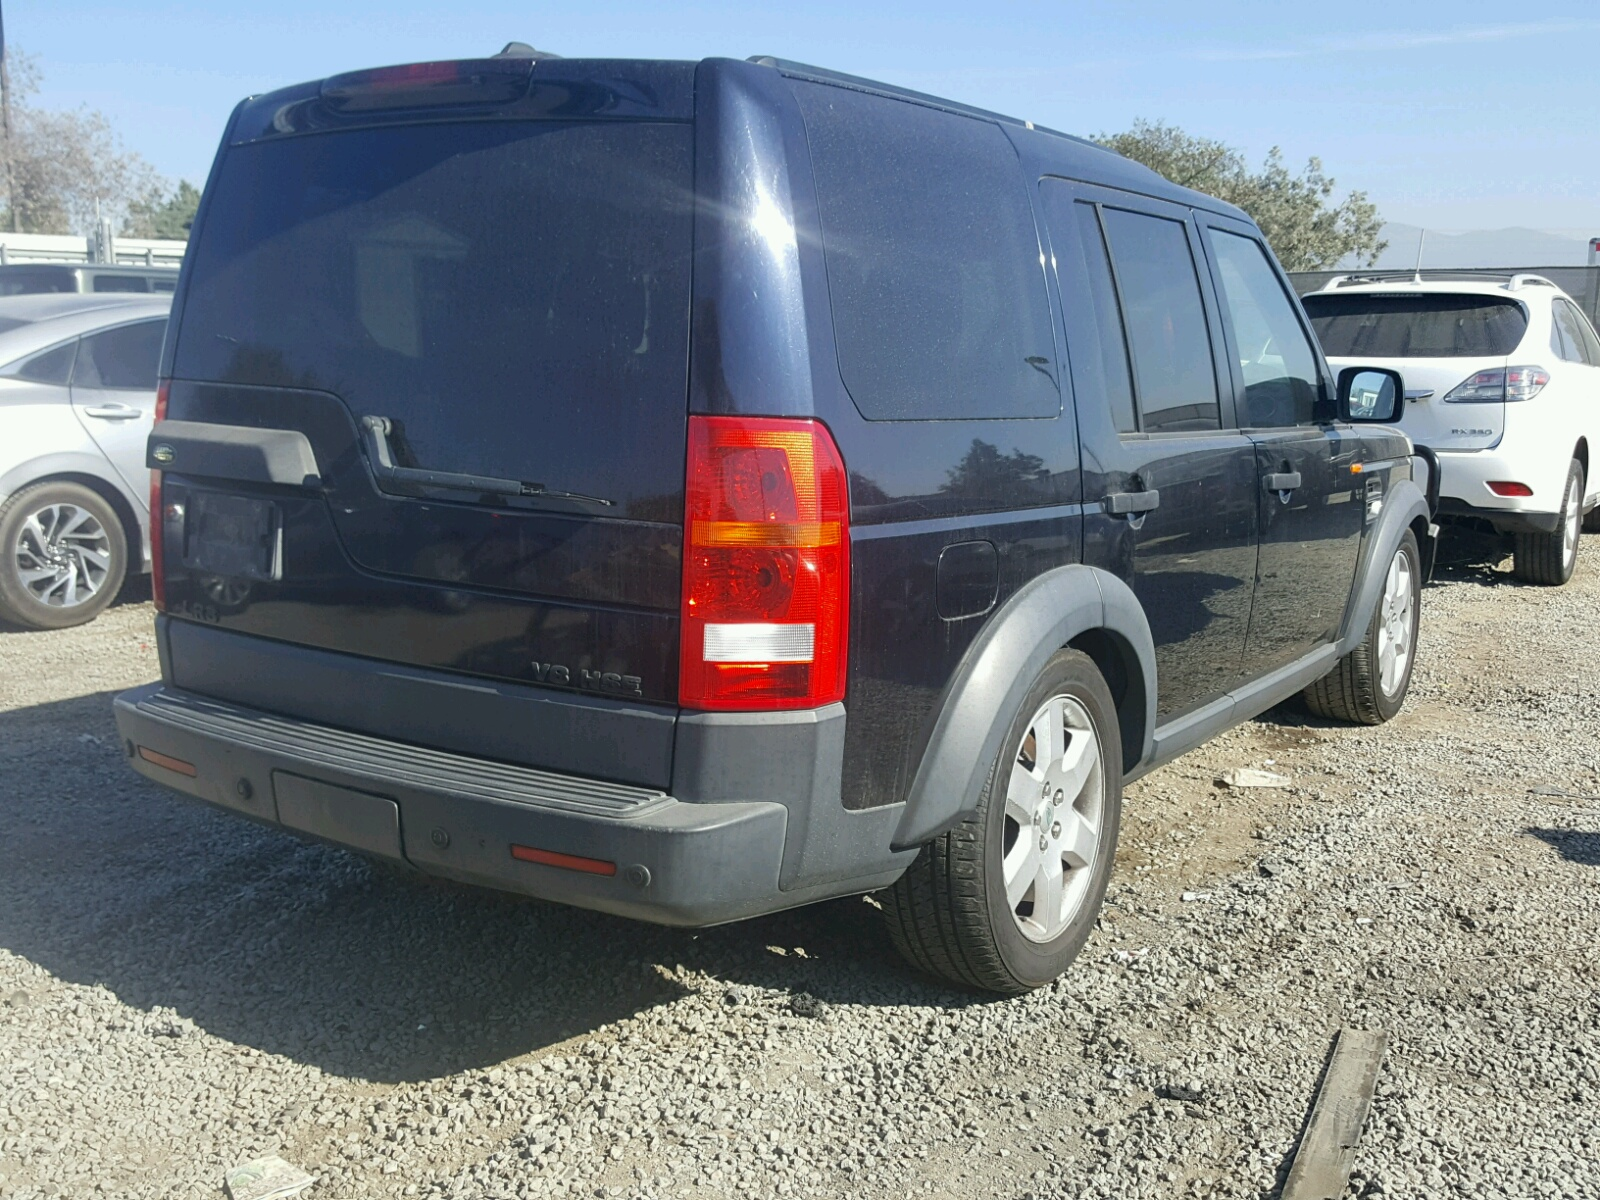 for glassboro sale copart land hse rover landrover lot cars acfd nj at